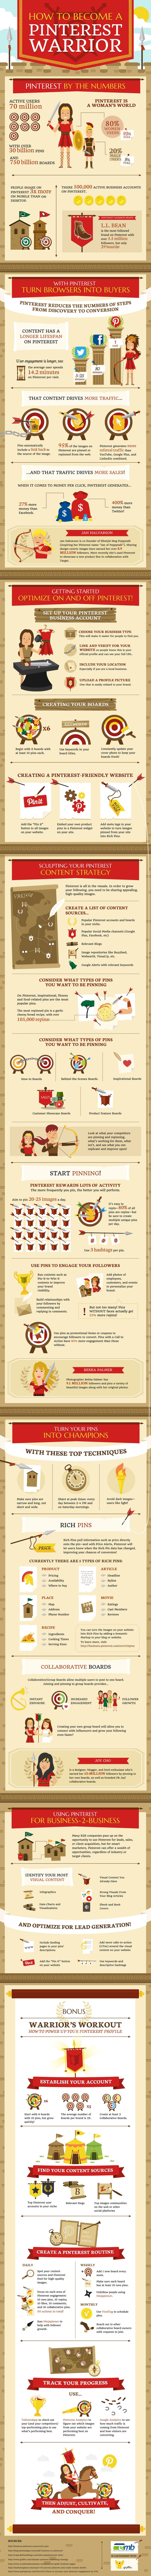 How to Become a #Pinterest Warrior [Infographic]